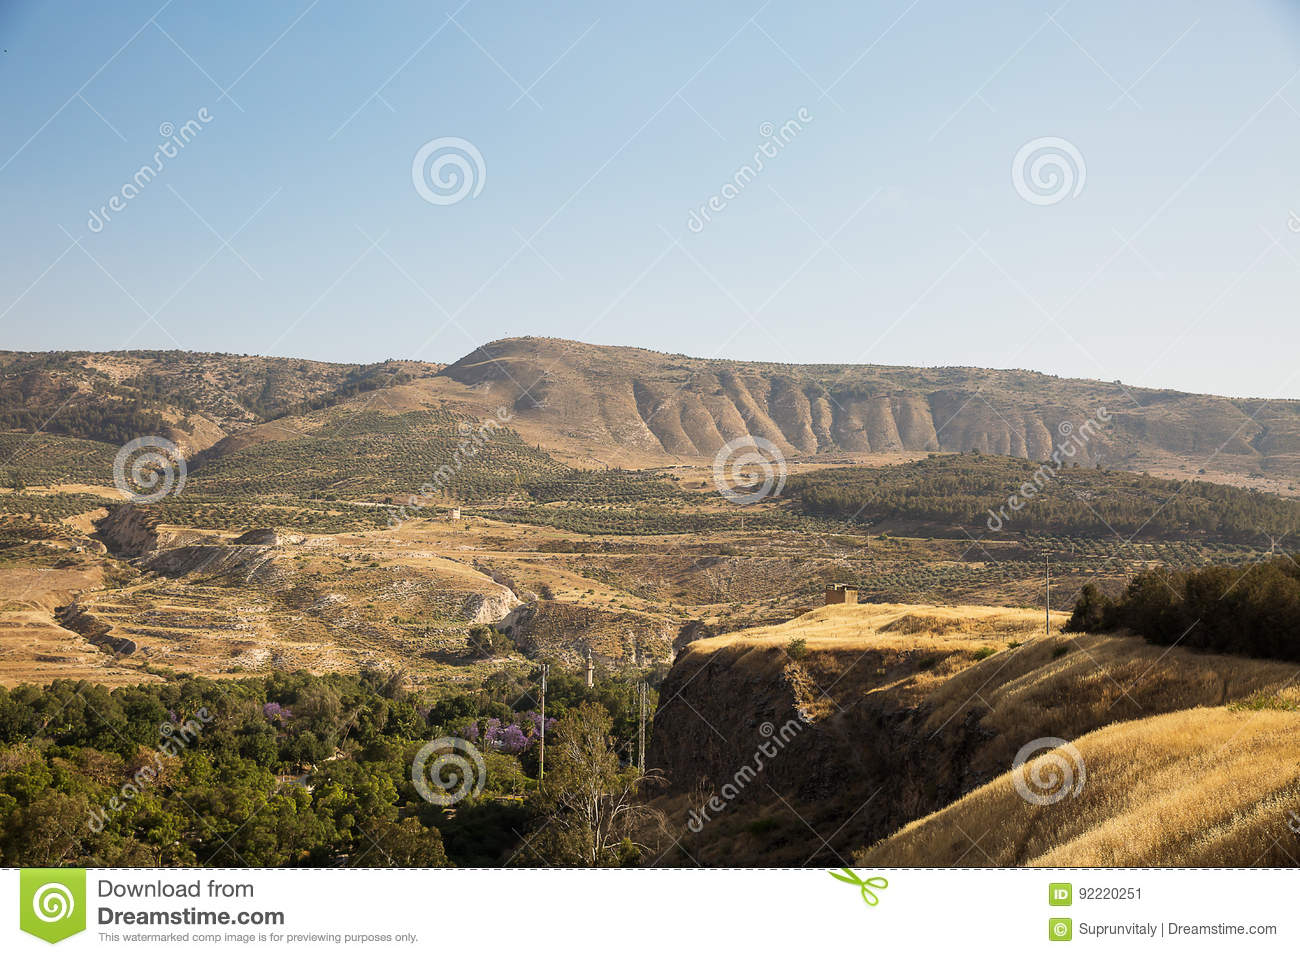 A view of the Syrian side of the Golan Heights .